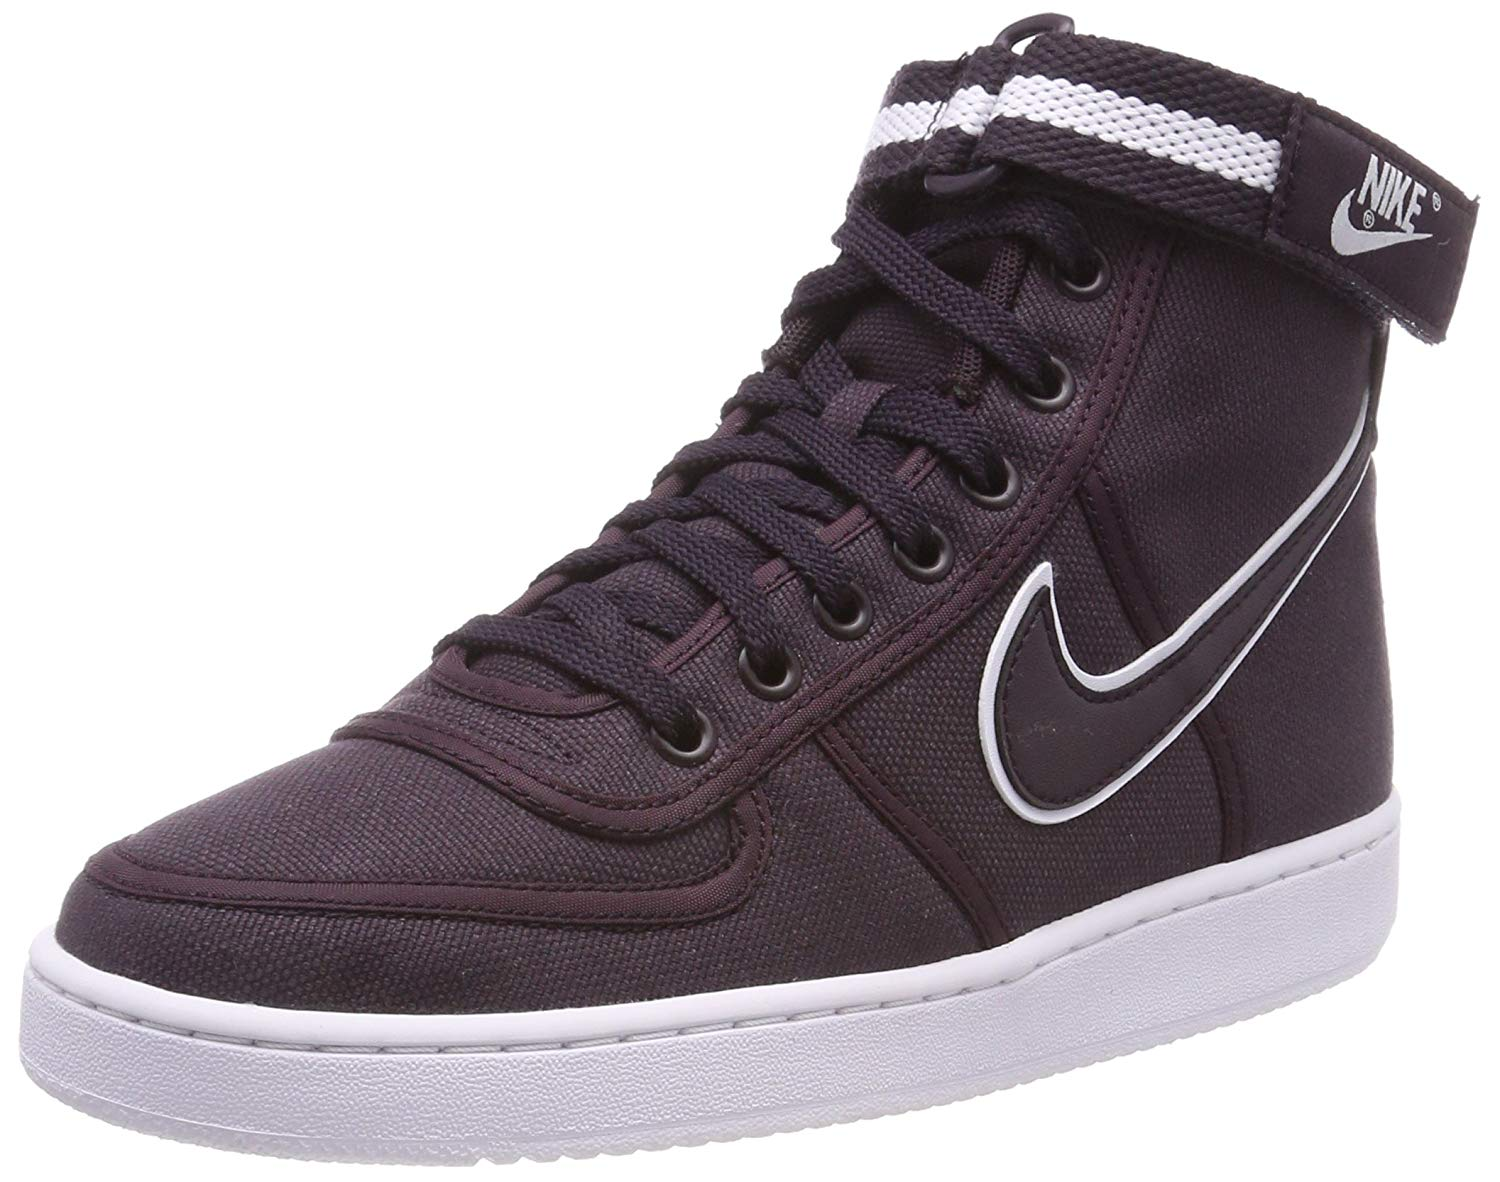 2e10f509ce8145 Get Quotations · Nike Vandal High Supreme